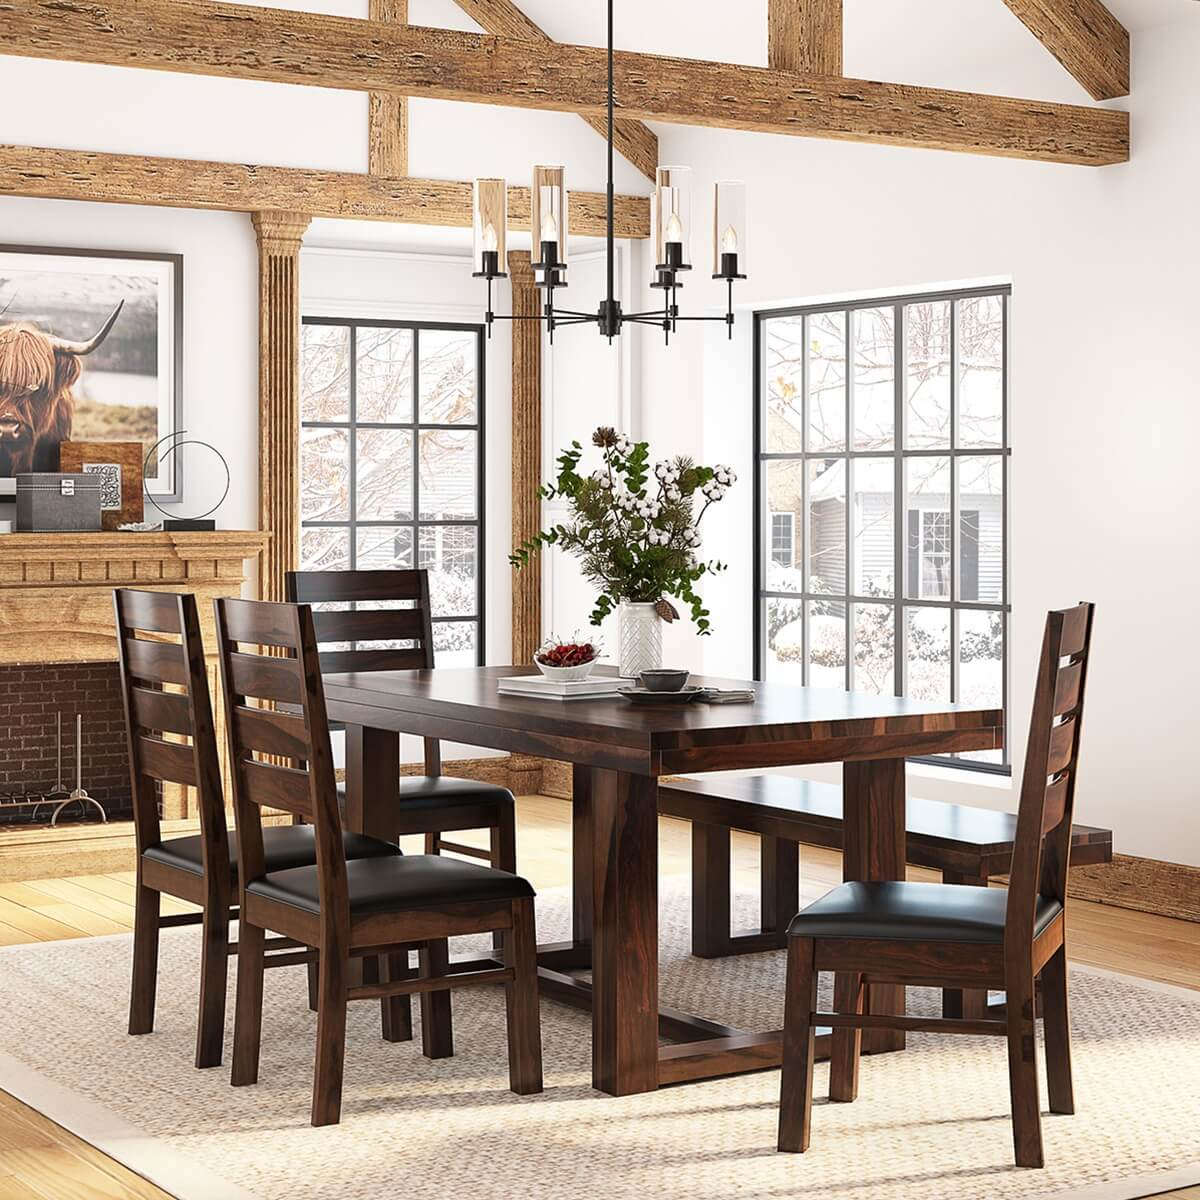 Wood Bench Dining Table: Galveston Rustic Solid Wood 6-Piece Dining Table Chair Set